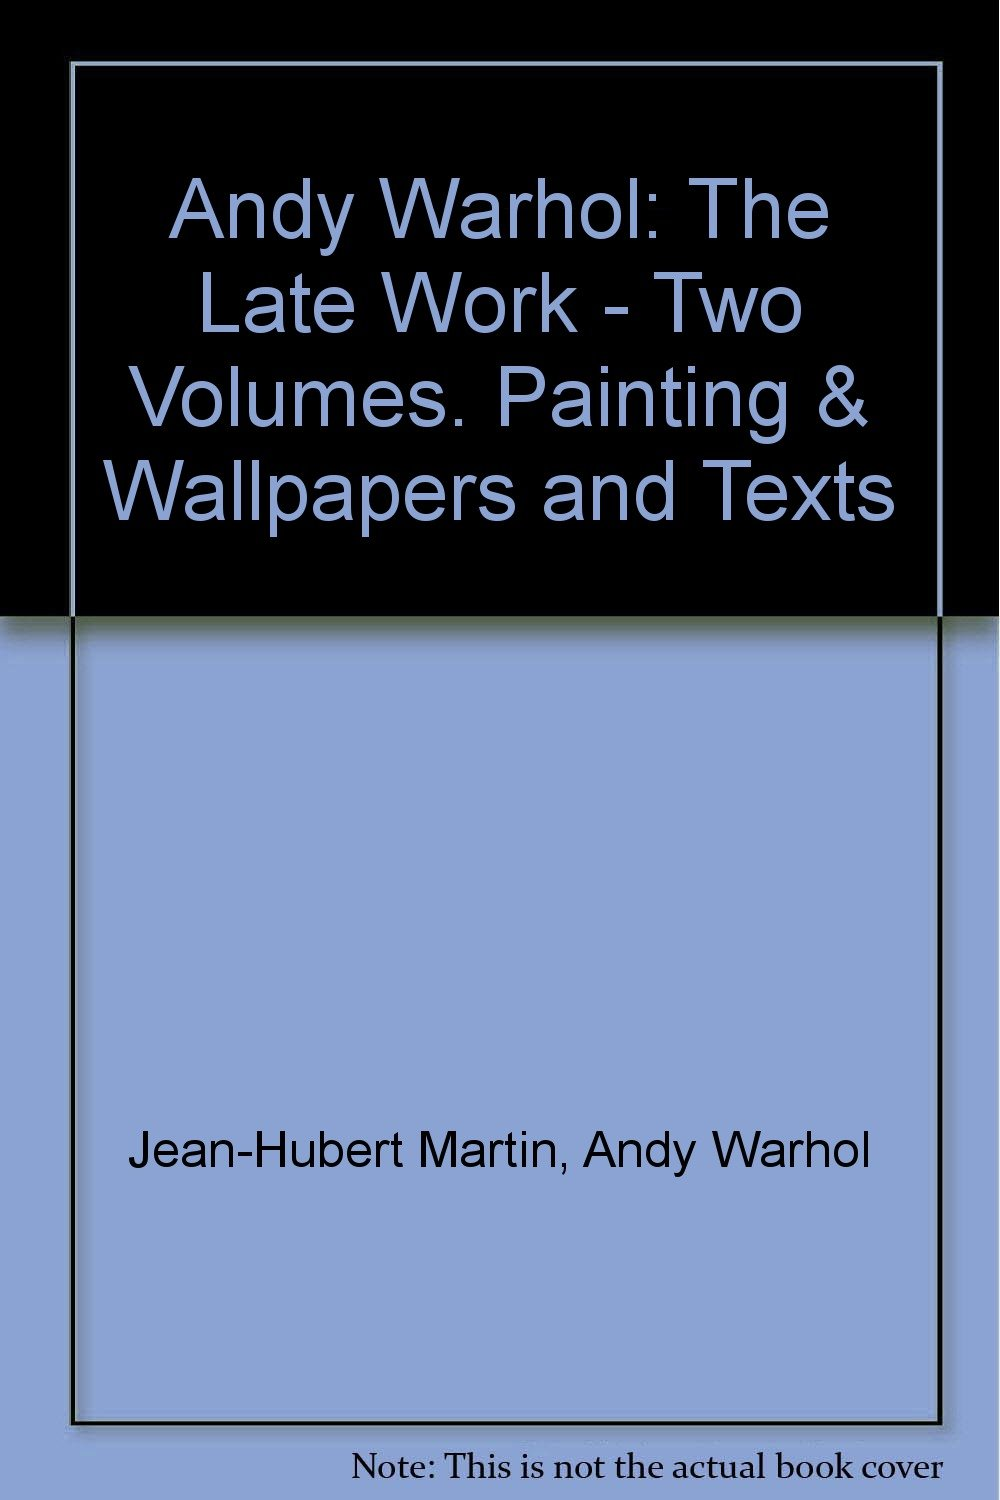 andy warhol the late work two volumes painting wallpapers and texts